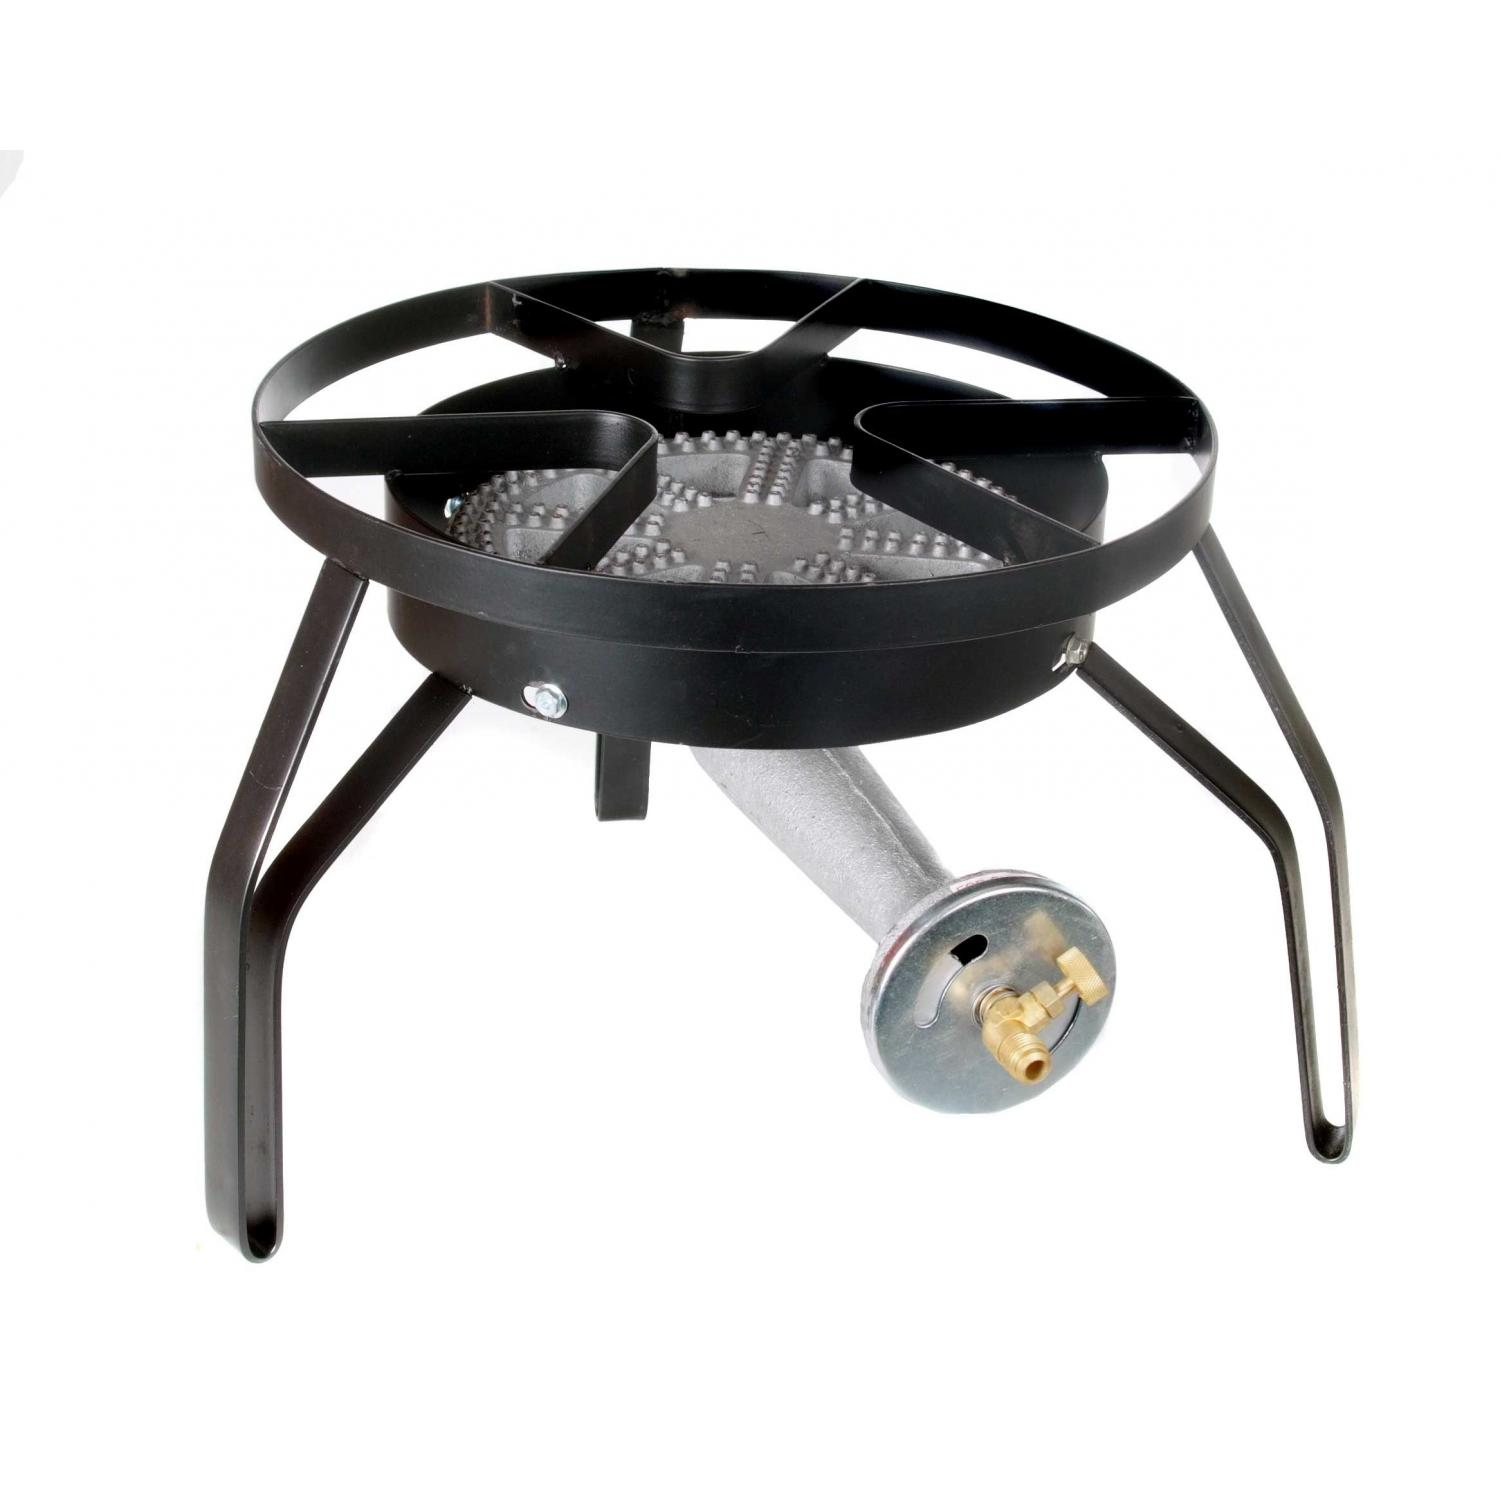 Cajun Cookware Burners On Low Stand Super Cooker Gas Burner